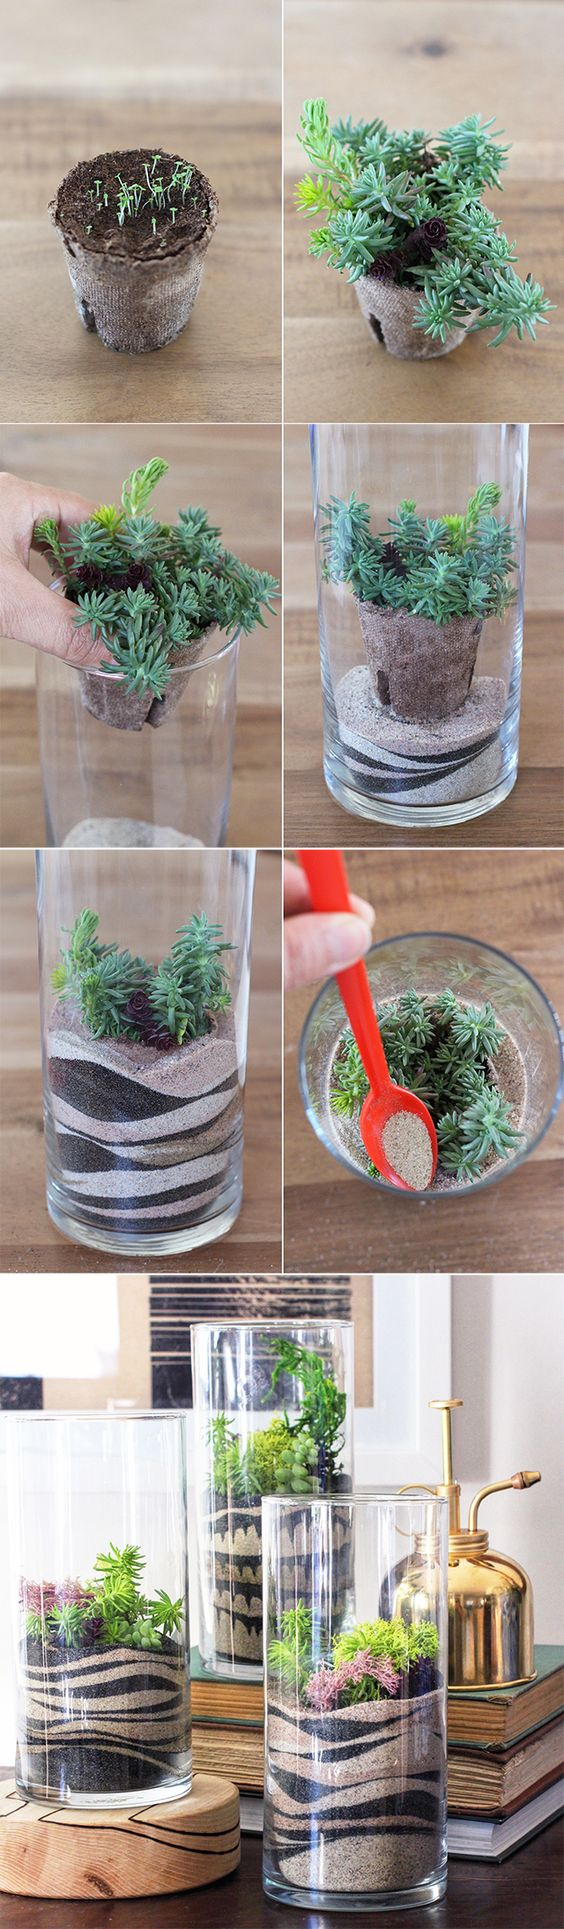 25 Indoor Succulent DIY Project Ideas Page 4 Of 4